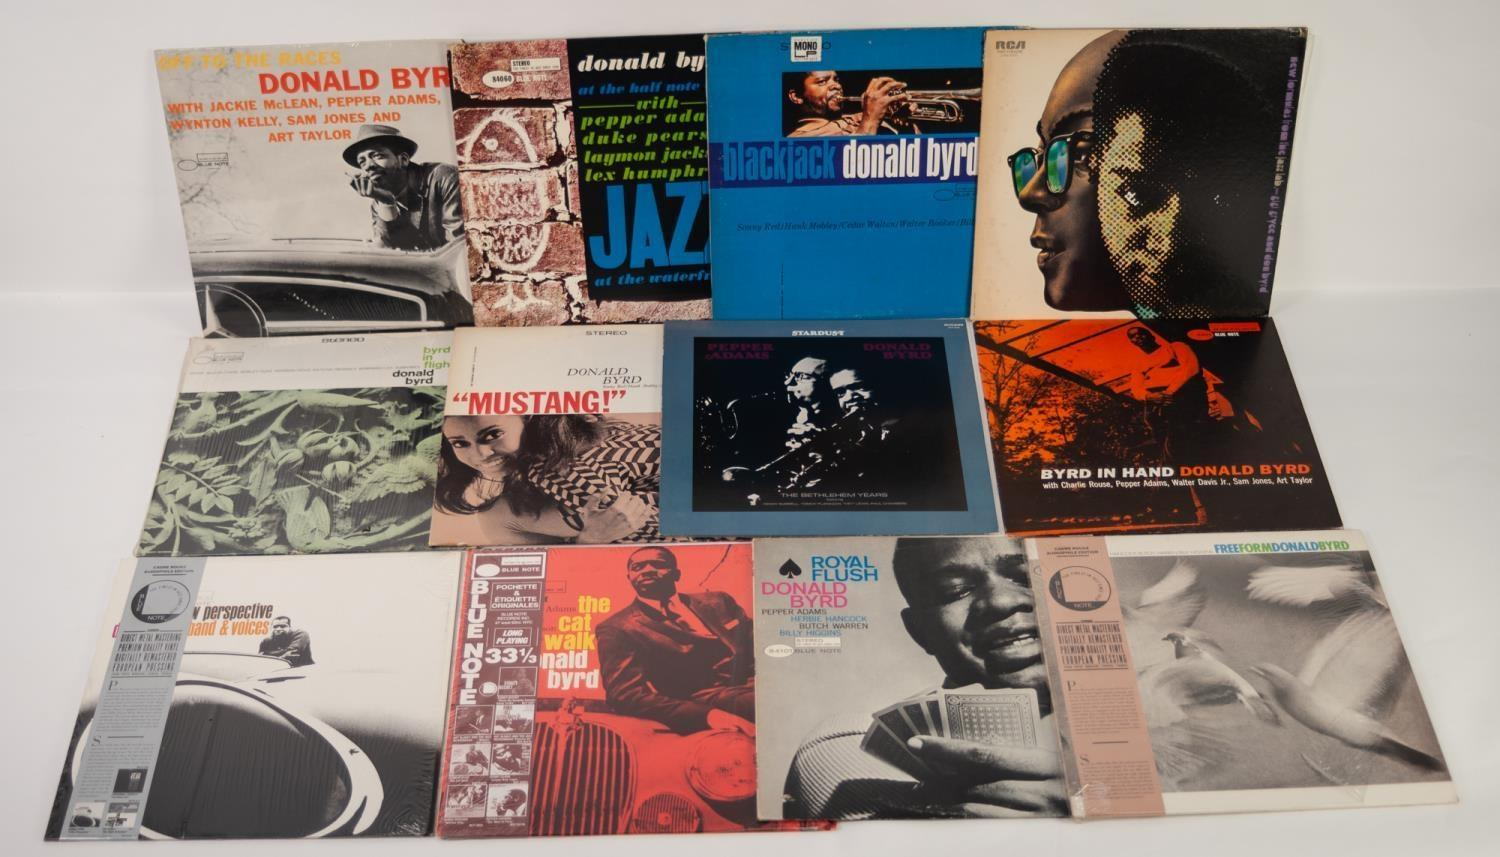 JAZZ, VINYL RECORDS- B IS FOR DONALD BYRD-BYRD IN HAND, Blue Note (BST 84019) reissue. DONALD BYRD-A